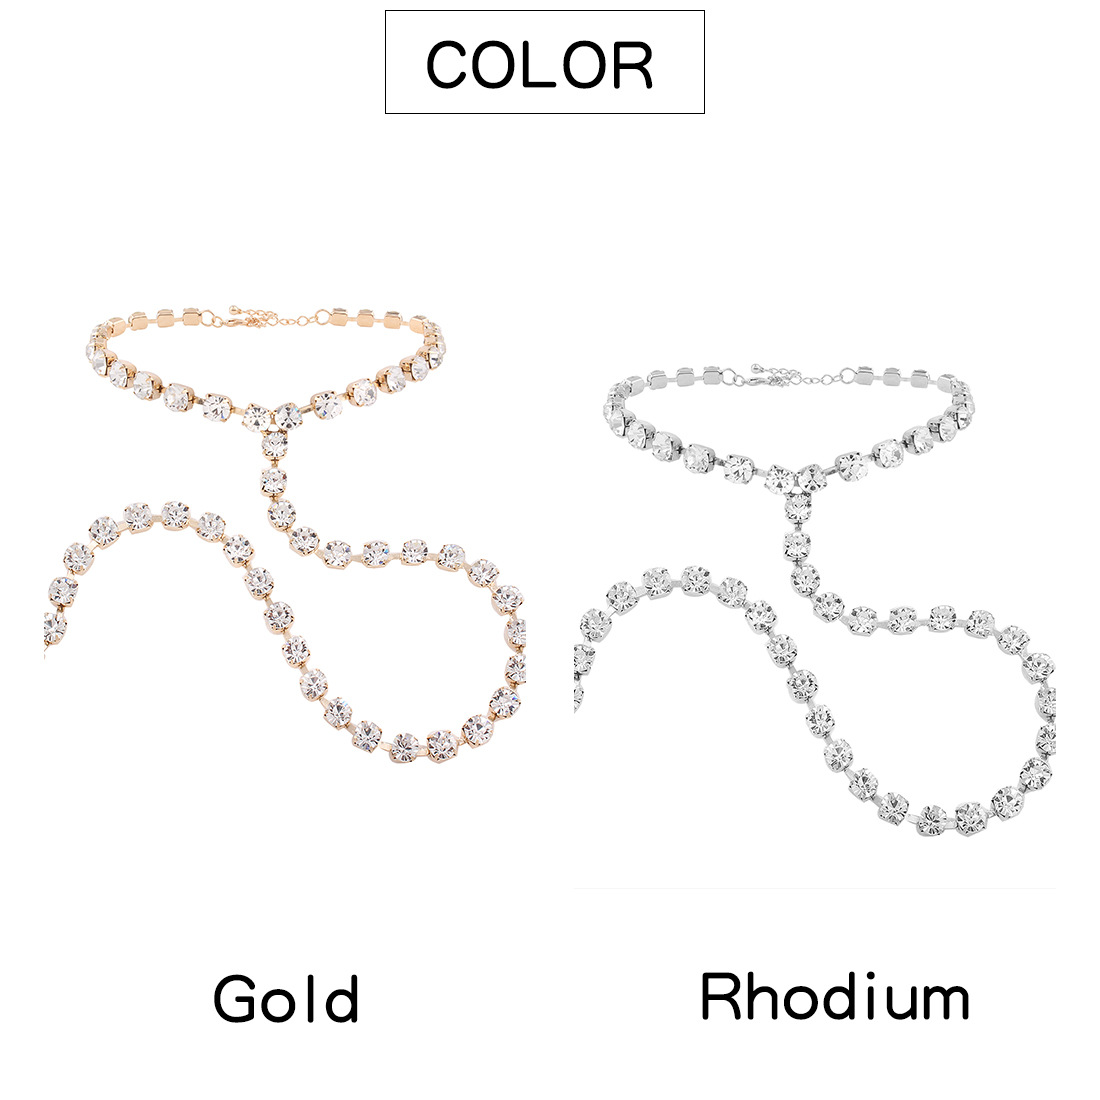 Occident and the United States alloy plating Necklace (Imitation k)NHNMD3775-Imitation k